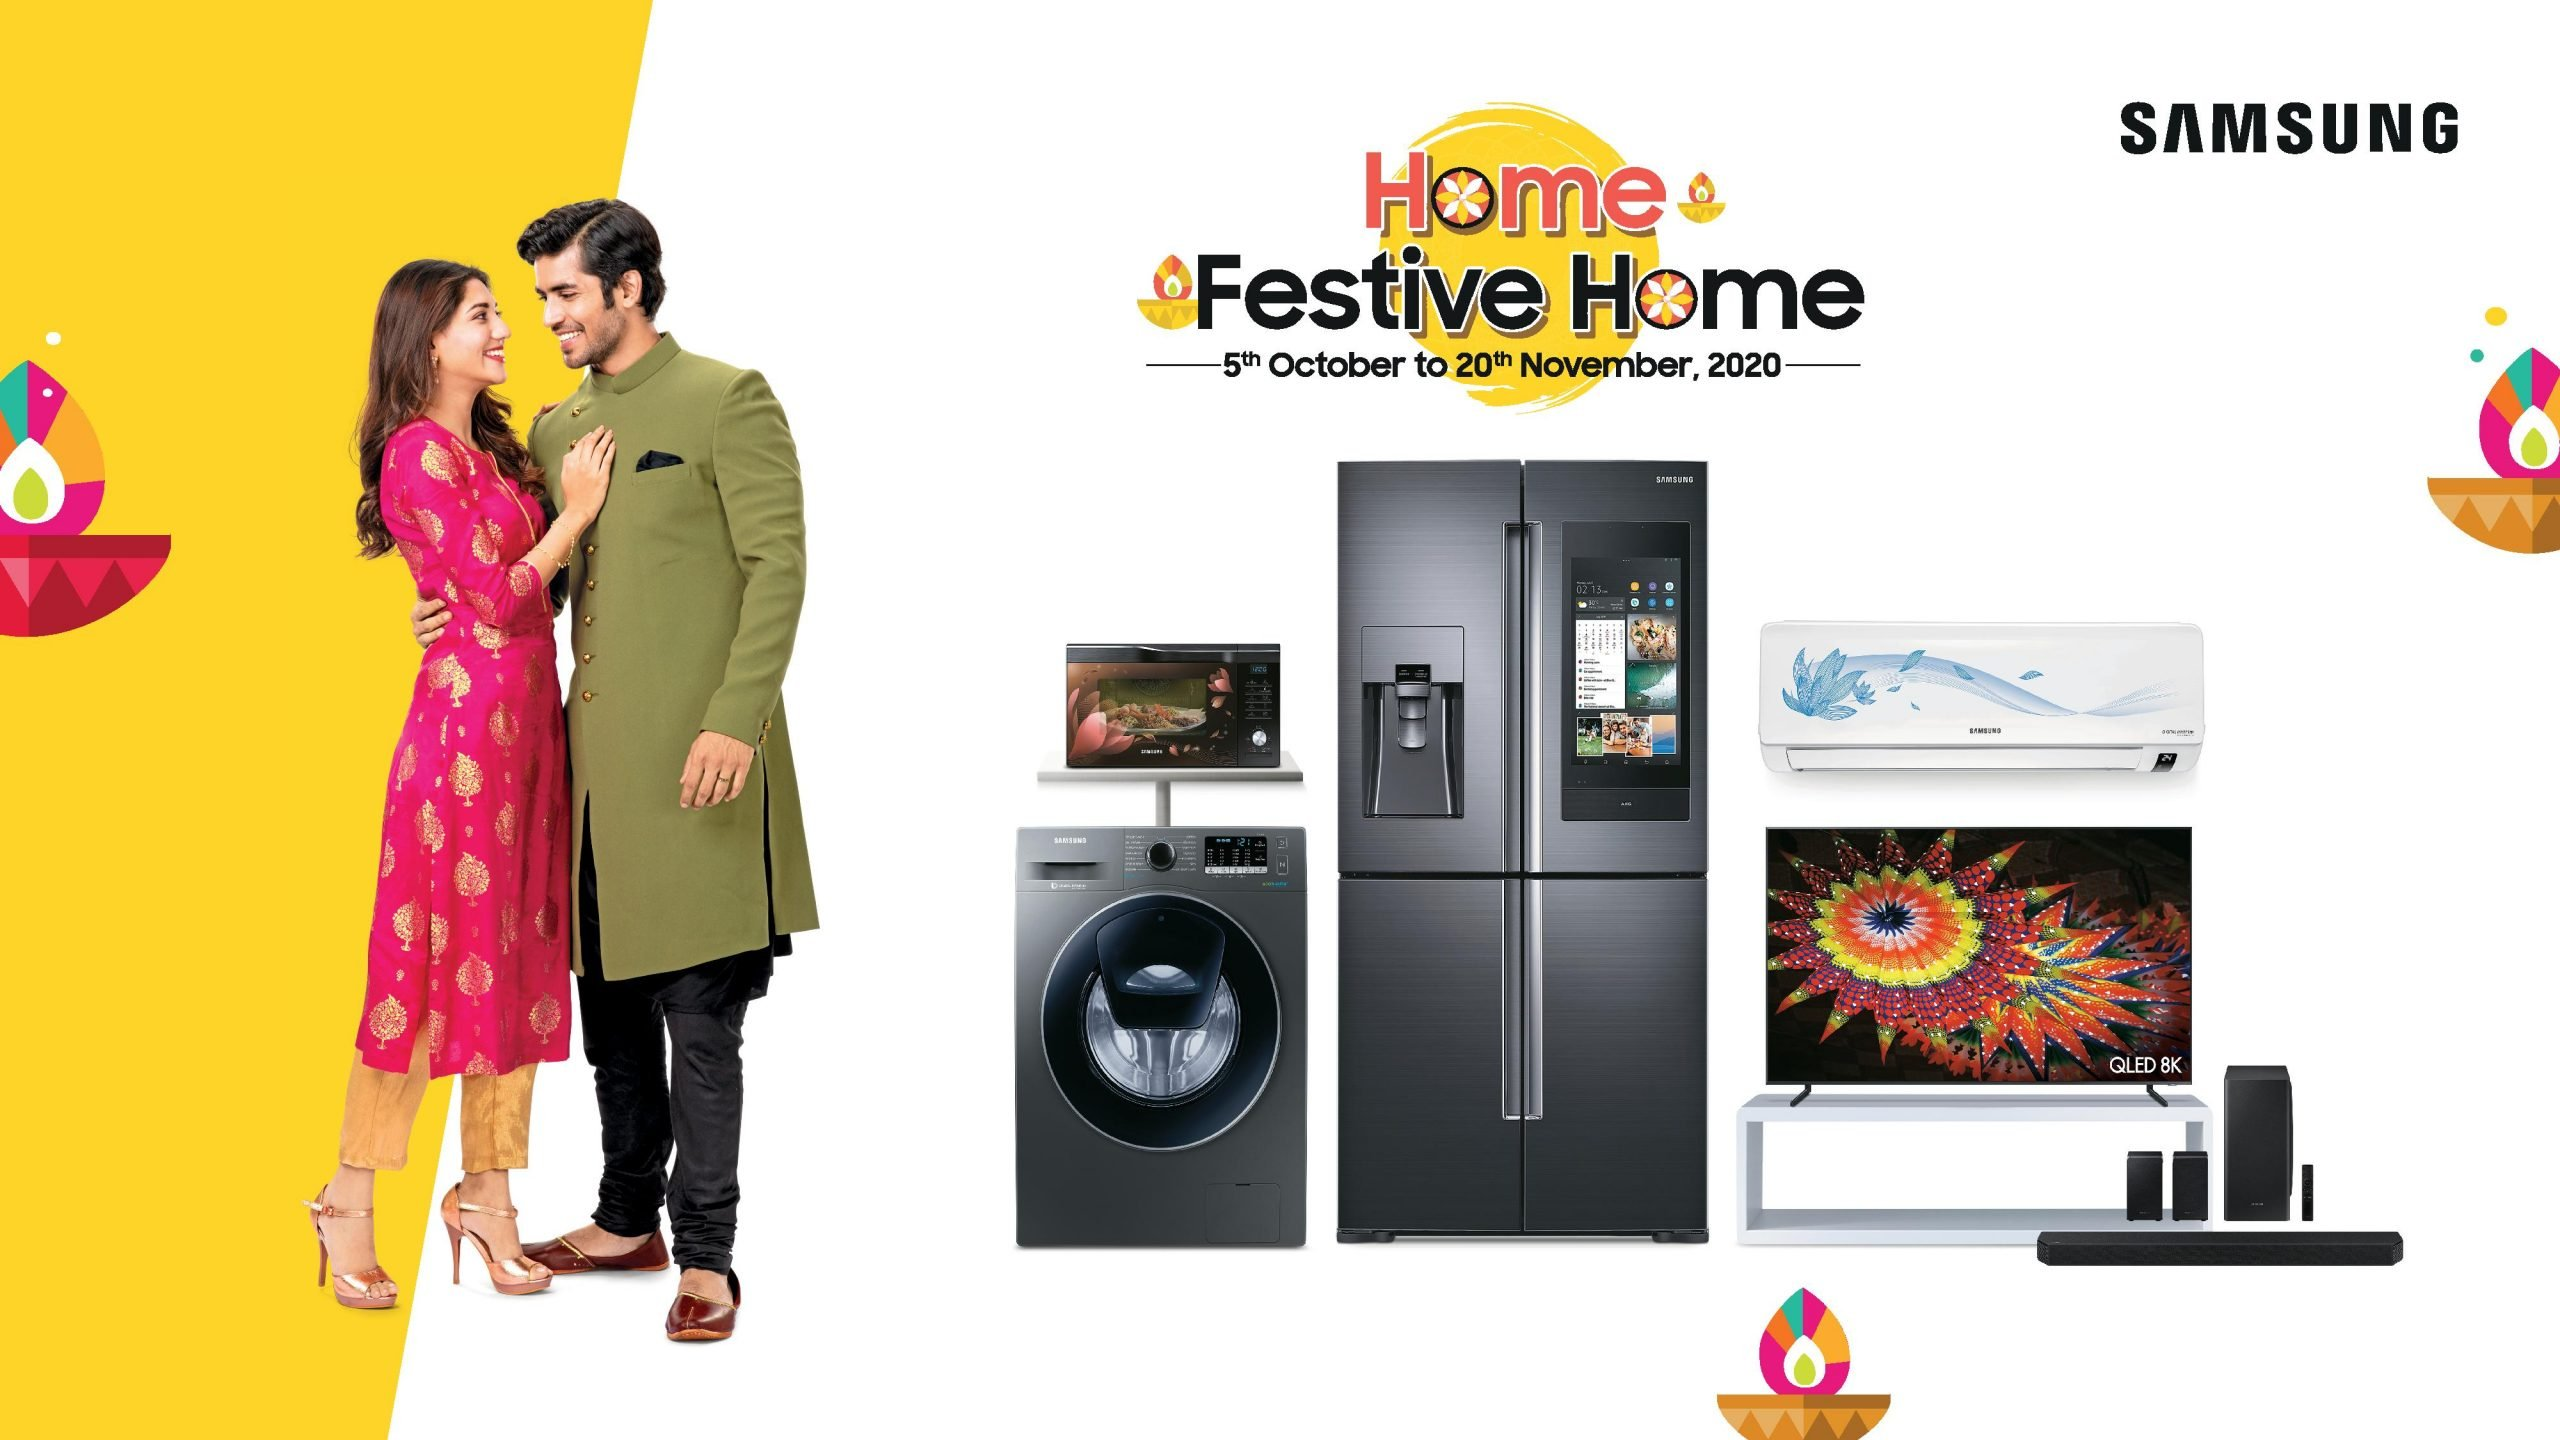 Celebrate This Festive Season With Samsung S Home Festive Home Offers Get Assured Gifts Exciting Deals Cashbacks And More News Monks